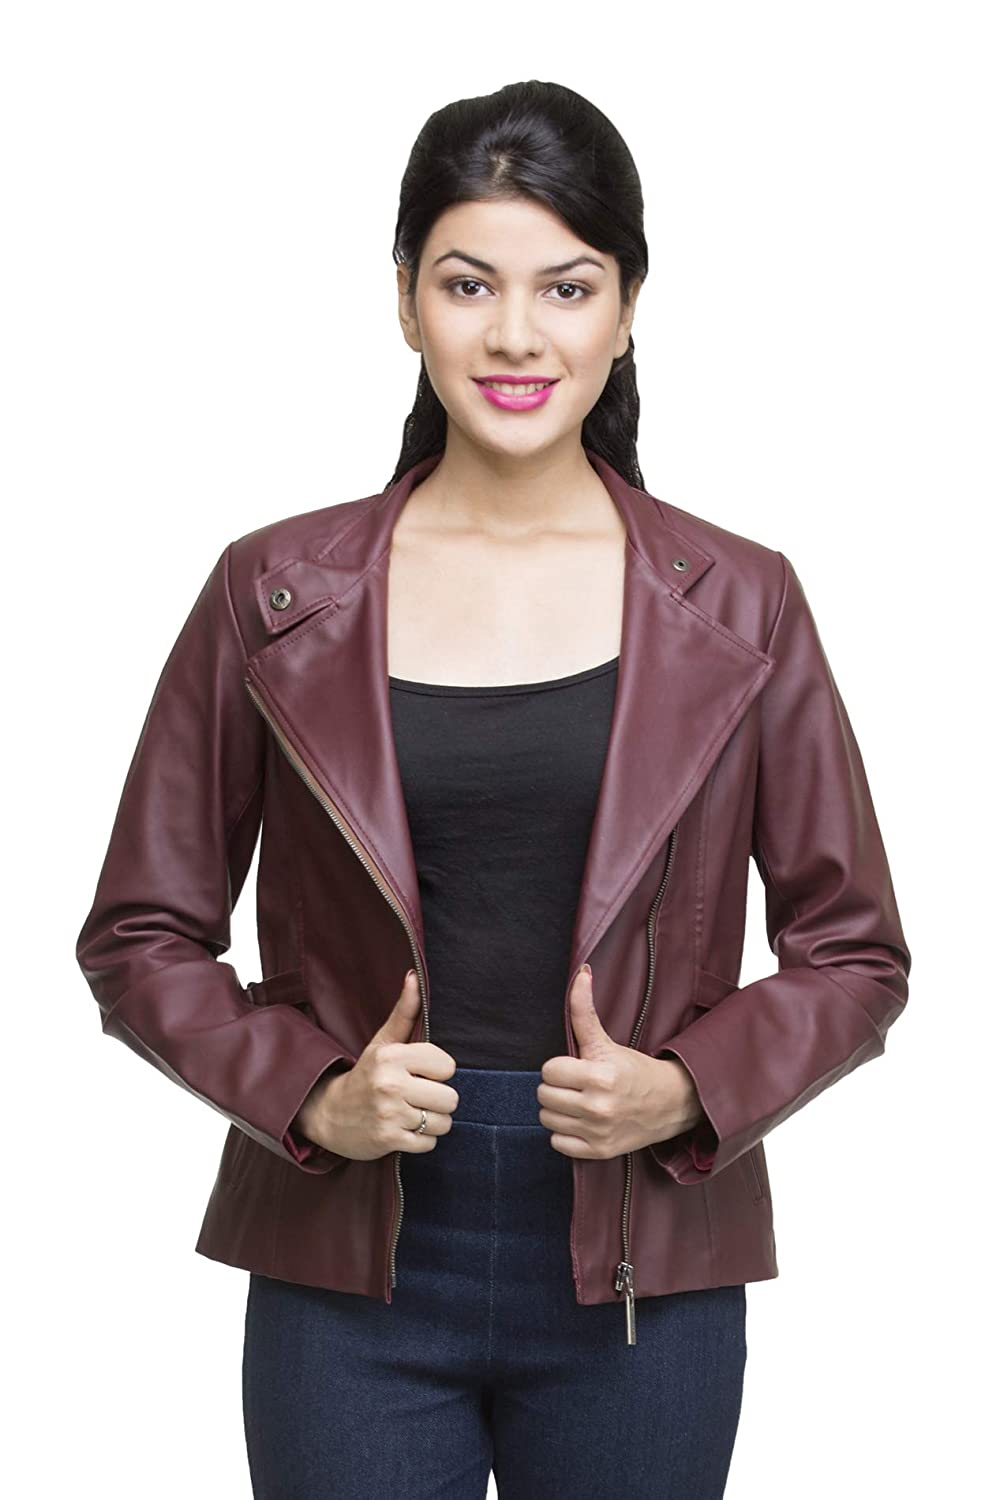 abddf190b7d Lambency Women Full Sleeve Faux Leather Jacket  Amazon.in  Clothing    Accessories